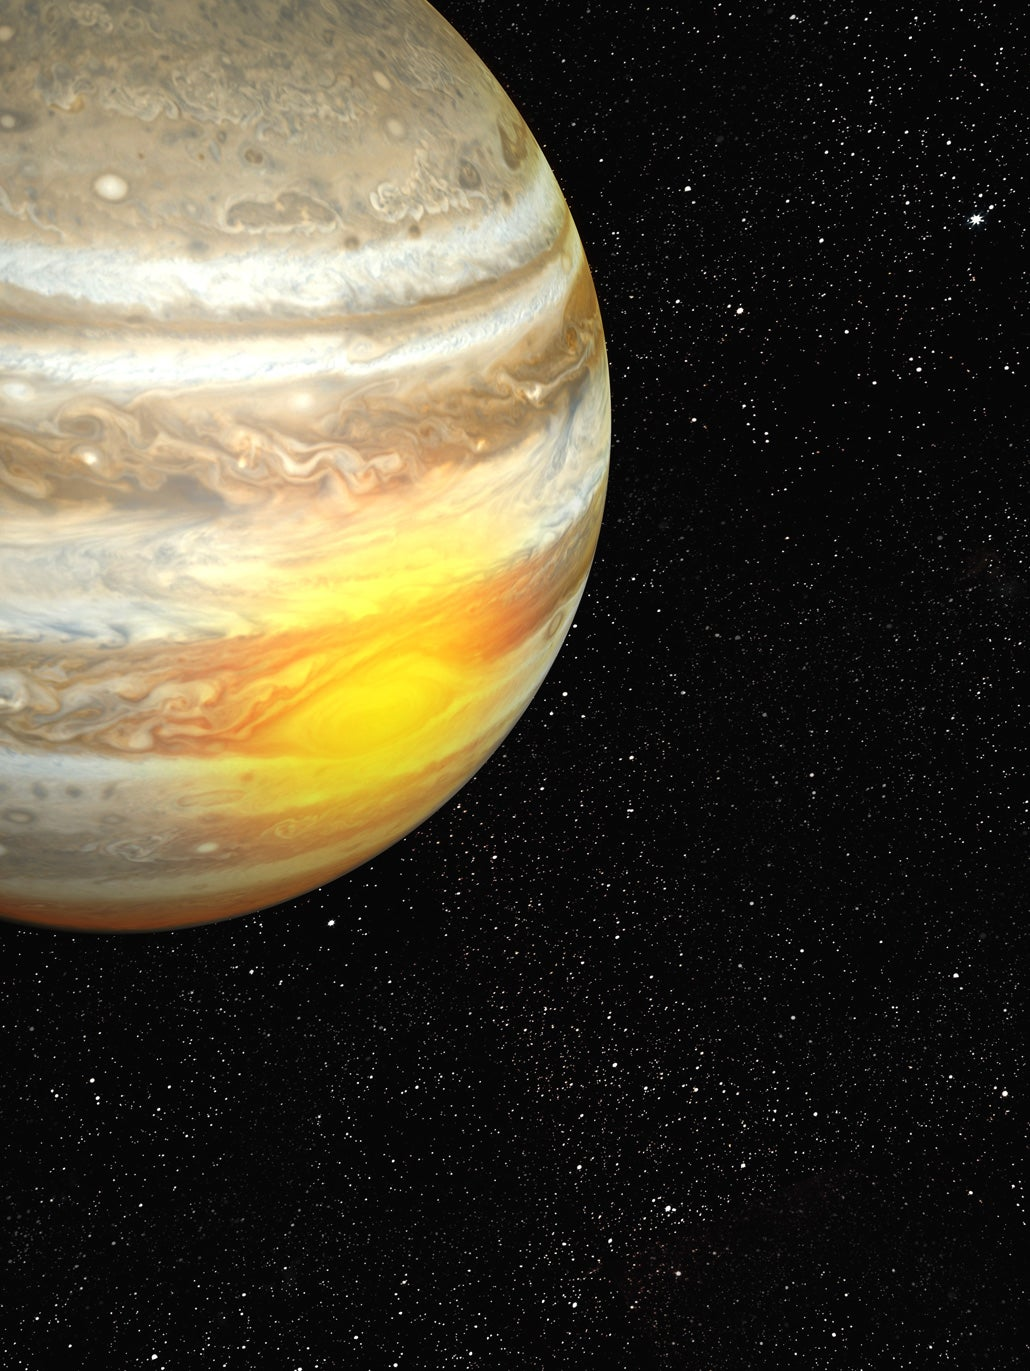 Jupiter's Great Red Spot Is Mysteriously Hot